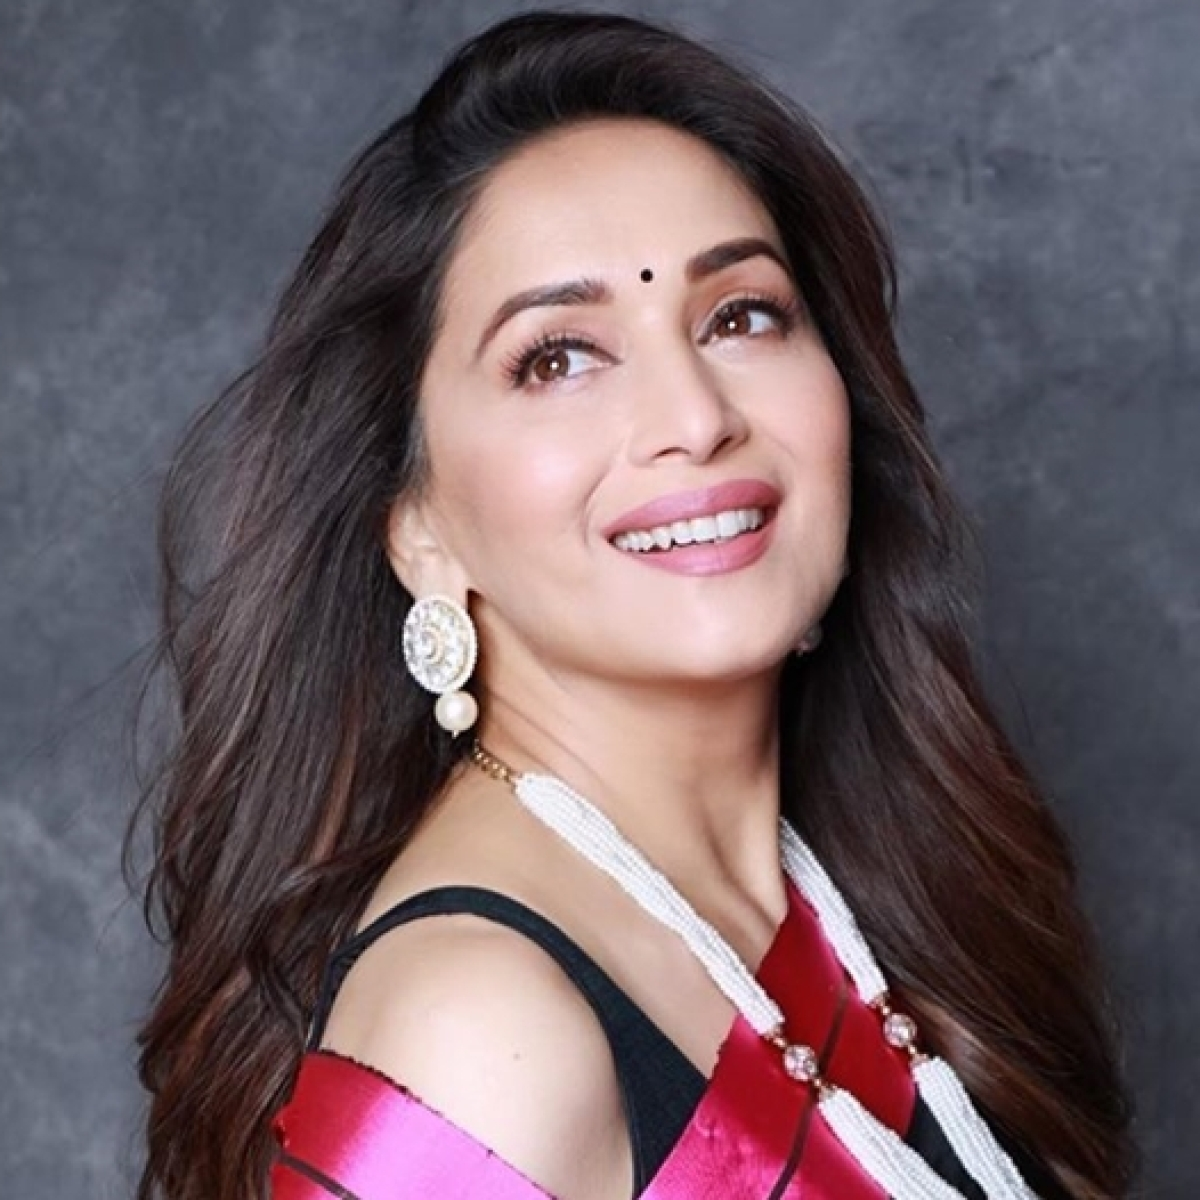 'So much talent waiting to be discovered...': Madhuri Dixit in raptures over viral video of girl dancing in village